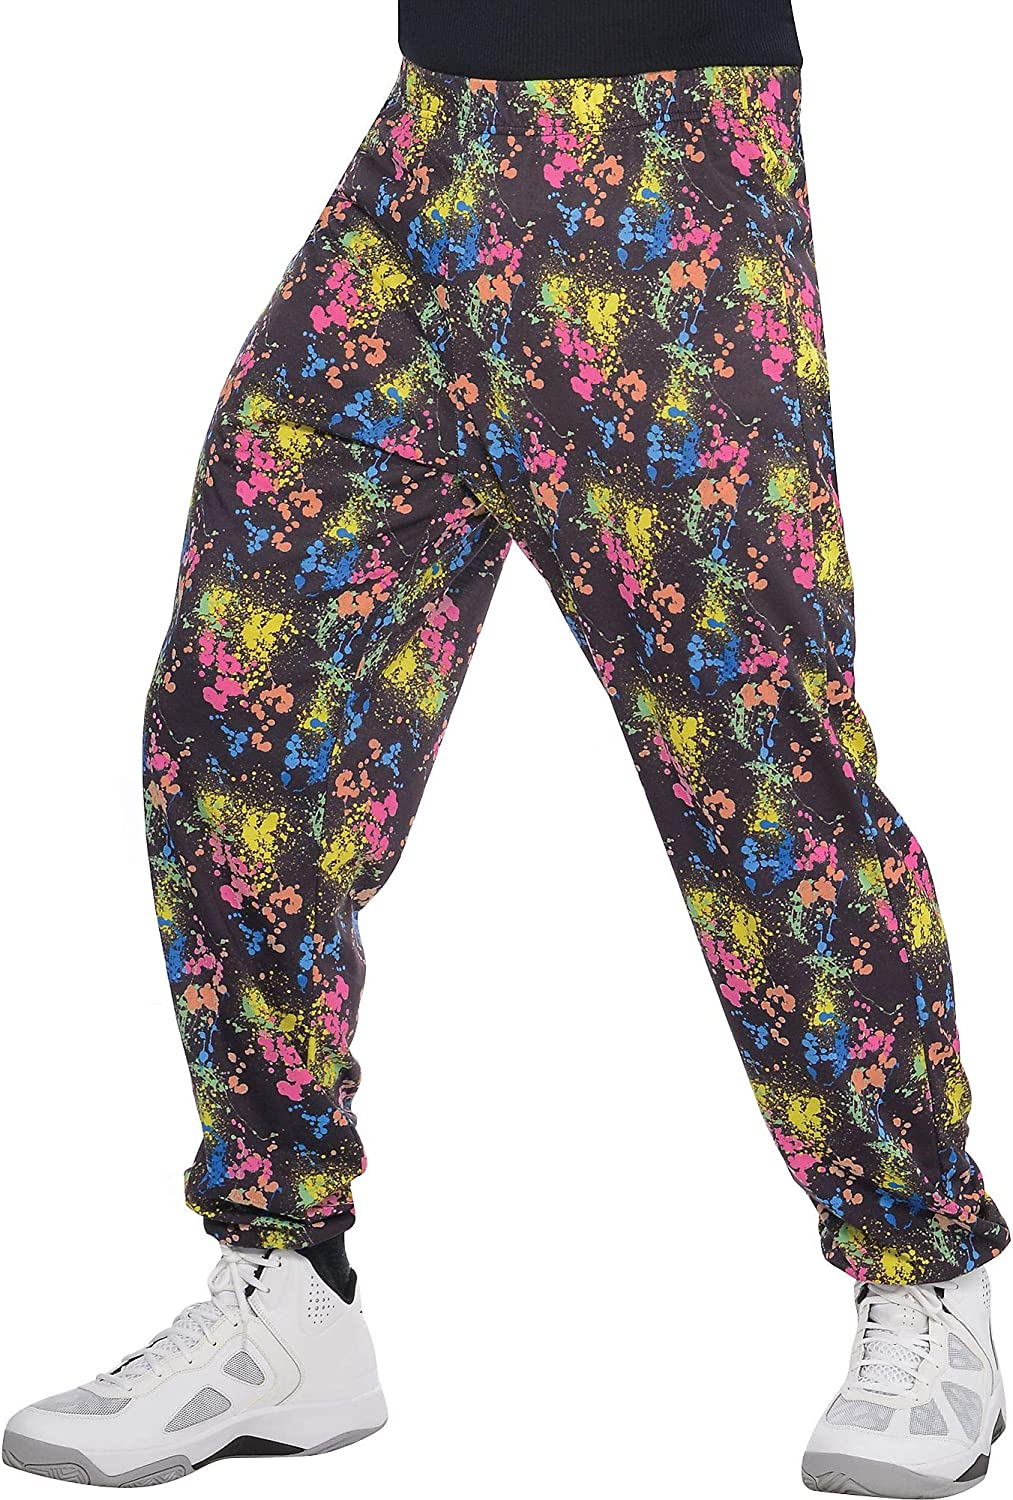 Men's Vintage Pants, Trousers, Jeans, Overalls amscan 80s Neon Muscle Pants for Men Halloween Costume Accessory with Paint-Splatter Print $24.99 AT vintagedancer.com